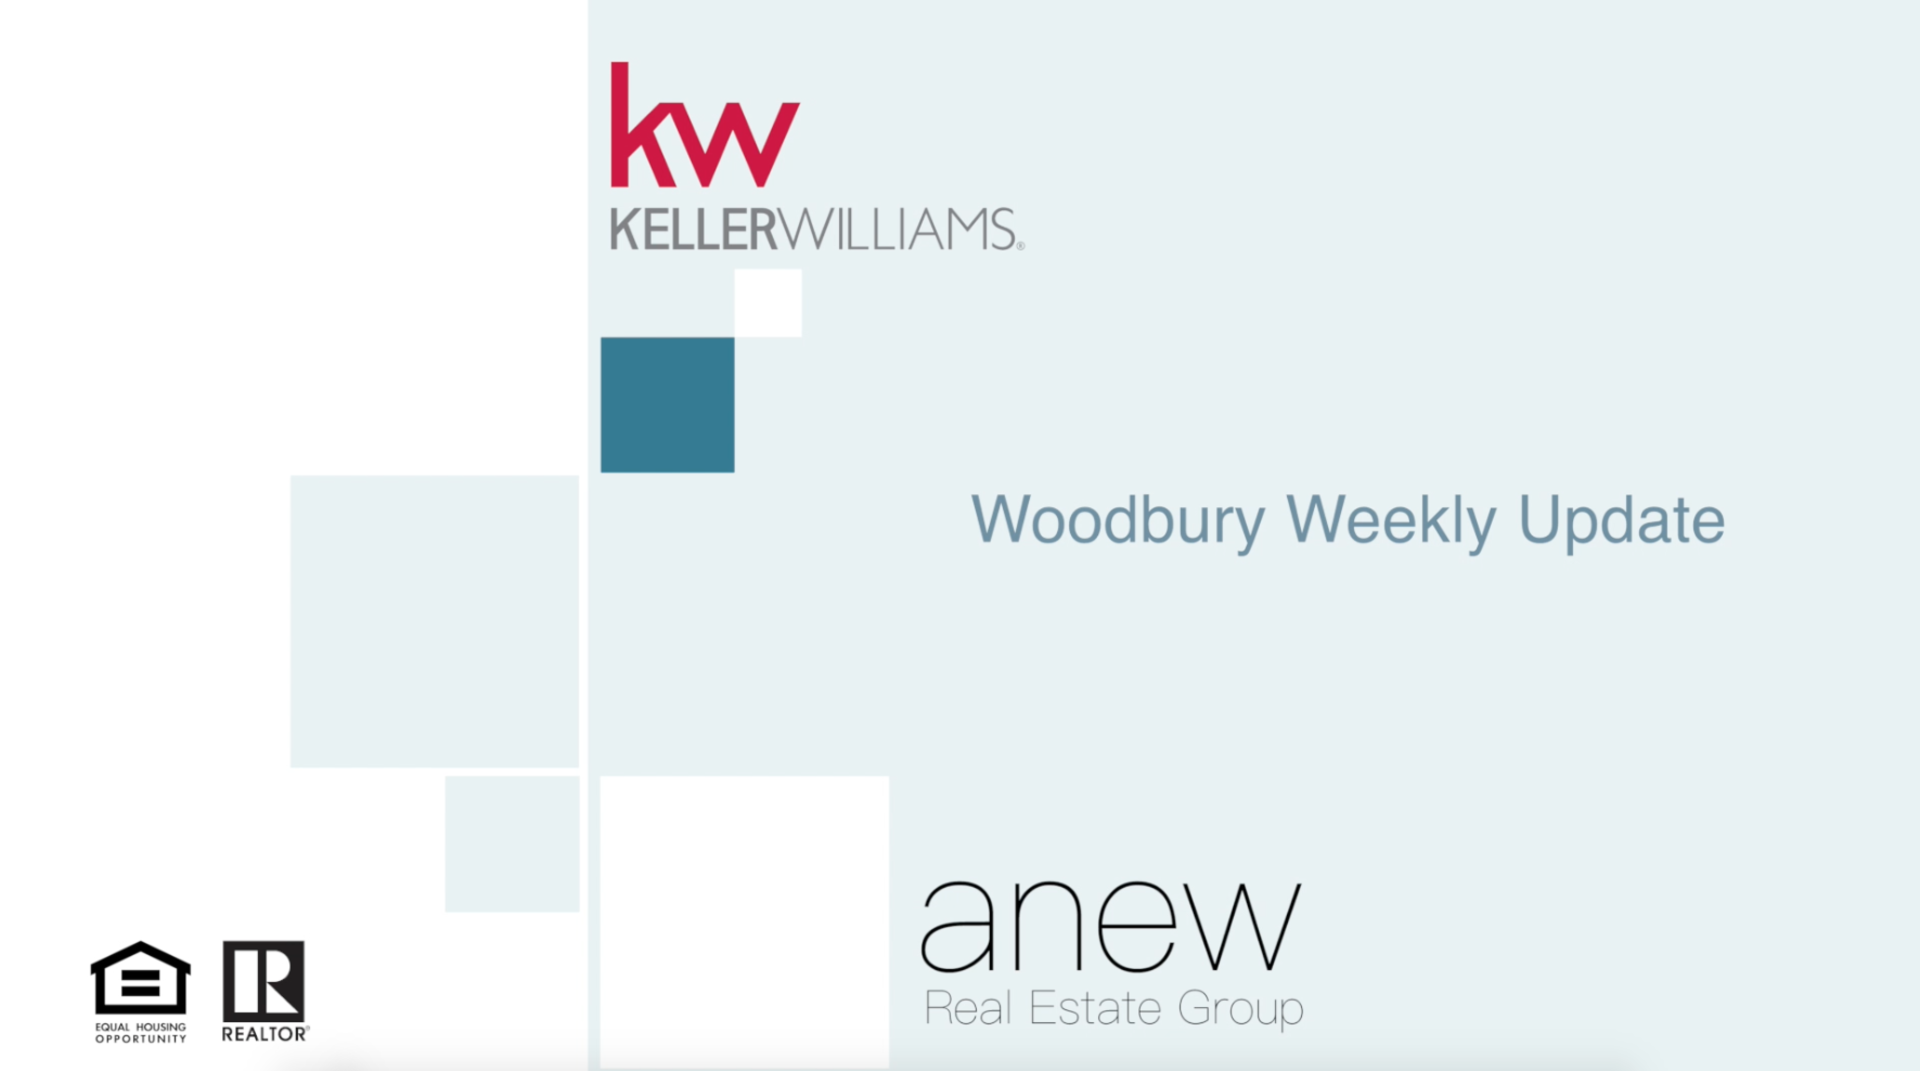 Woodbury Weekly Update for August 20th, 2018